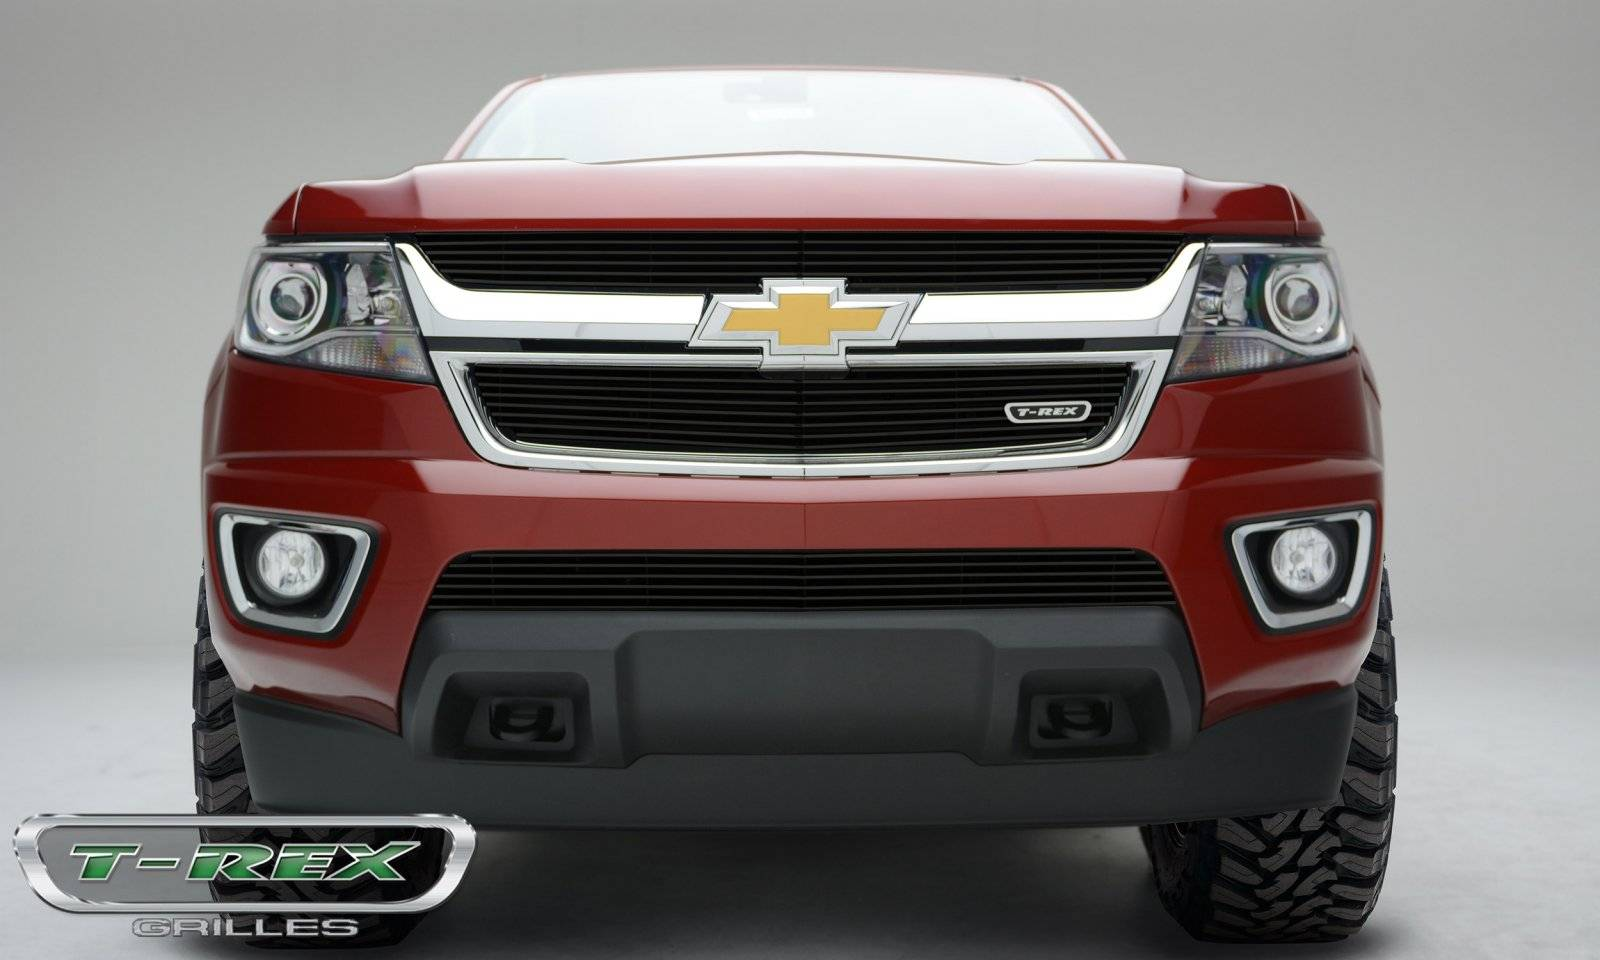 T-REX Grilles - Chevrolet Colorado - Billet Series - Main Grille - Overlay with Black Powdercoat Finish - Pt # 21267B